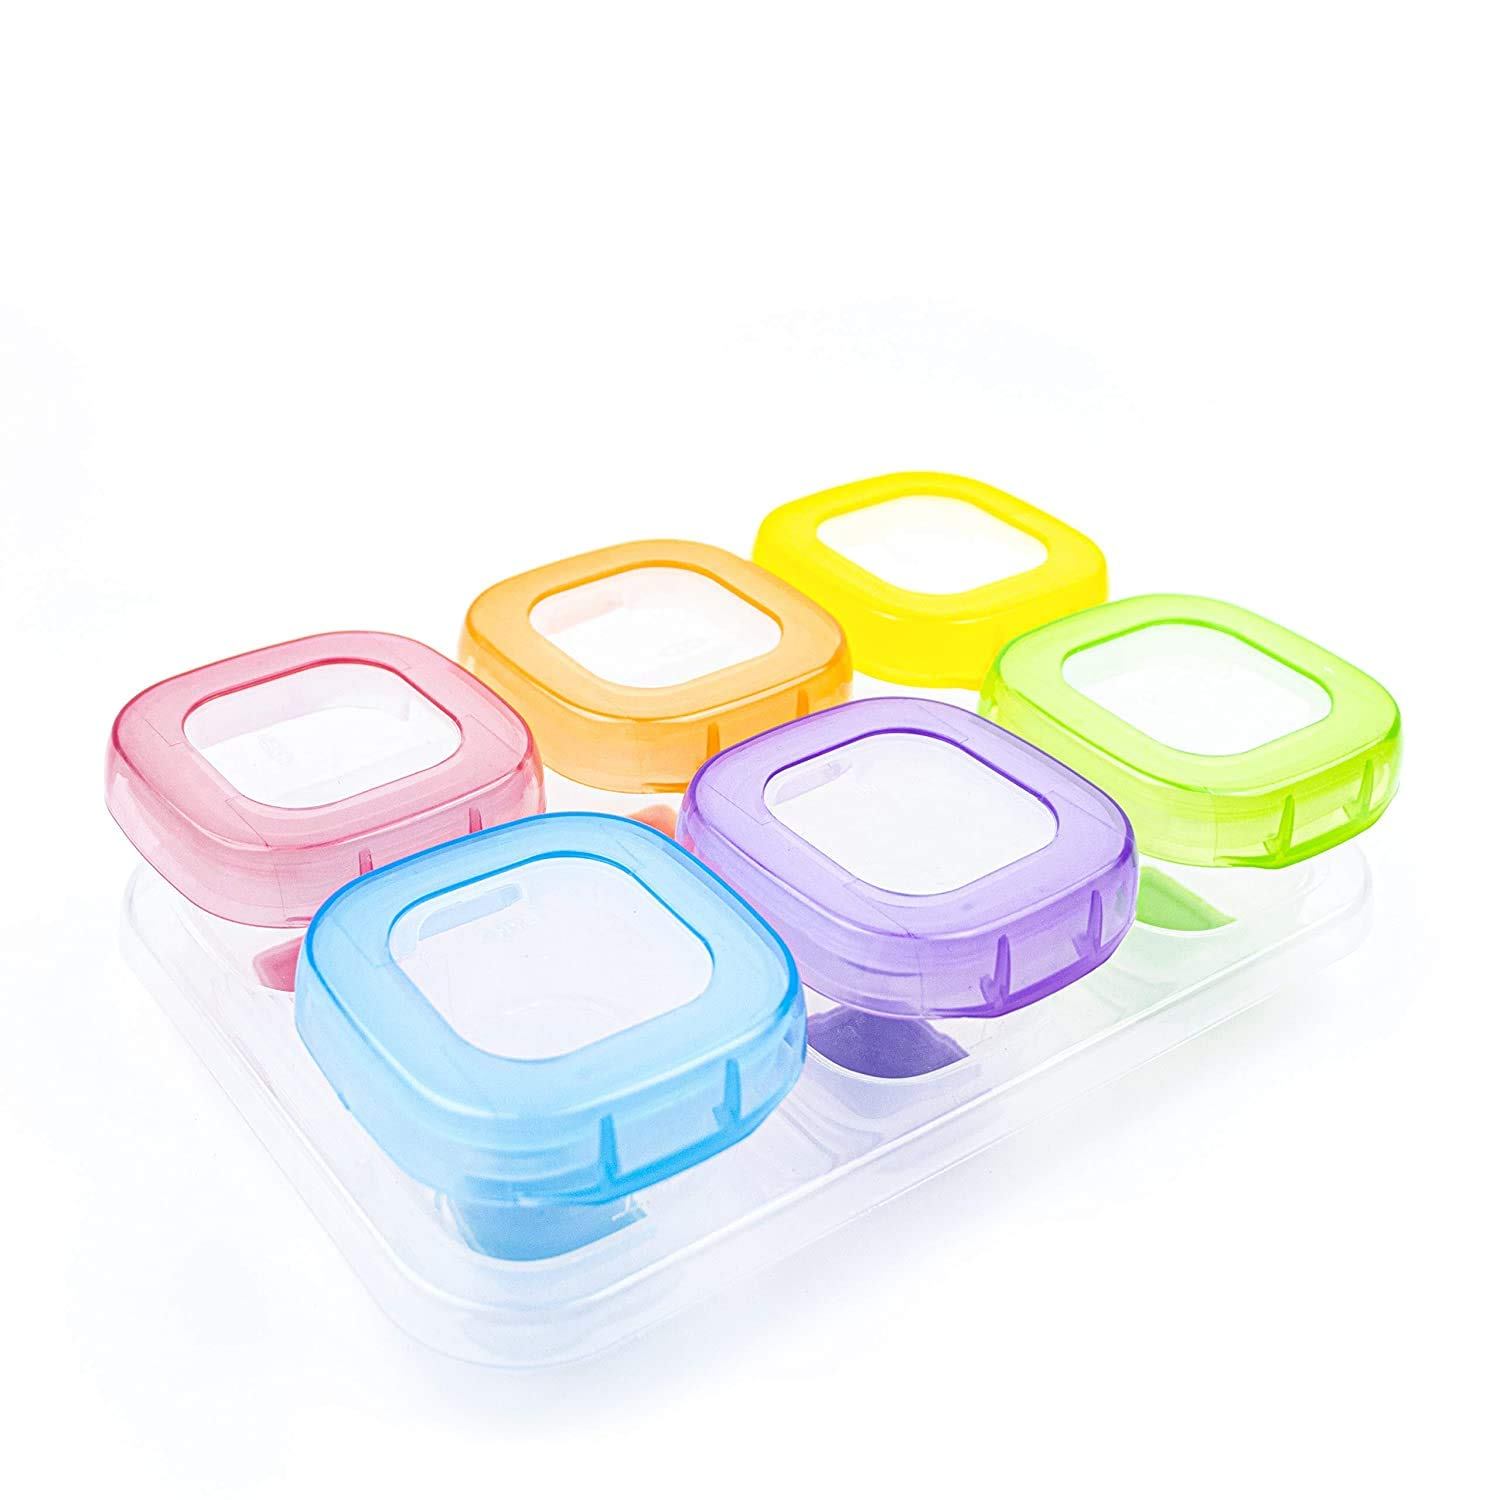 6Pcs 2oz Baby Food Blocks Containers, Leakproof Baby Food Containers with Lid and Soft Base, BPA Free Resuable Baby Food Jars for Freezer, Microwave, Dishwasher Safe